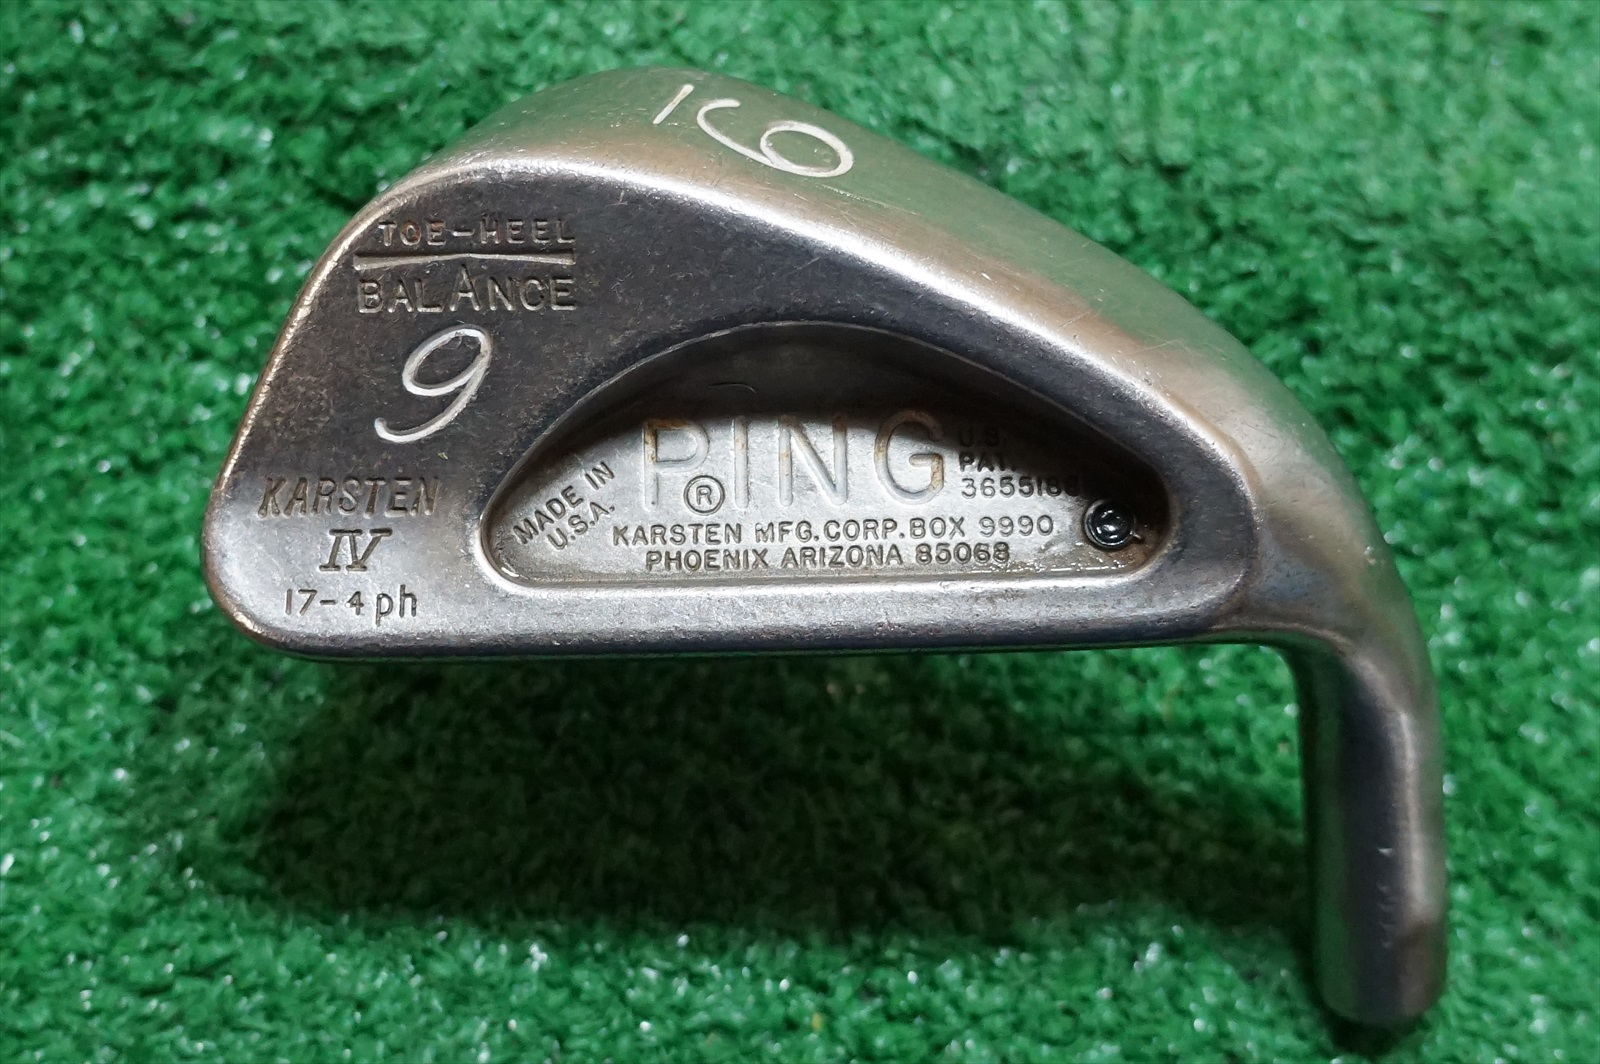 PING KARSTEN IV * #9 IRON CLUB HEAD ONLY 684305